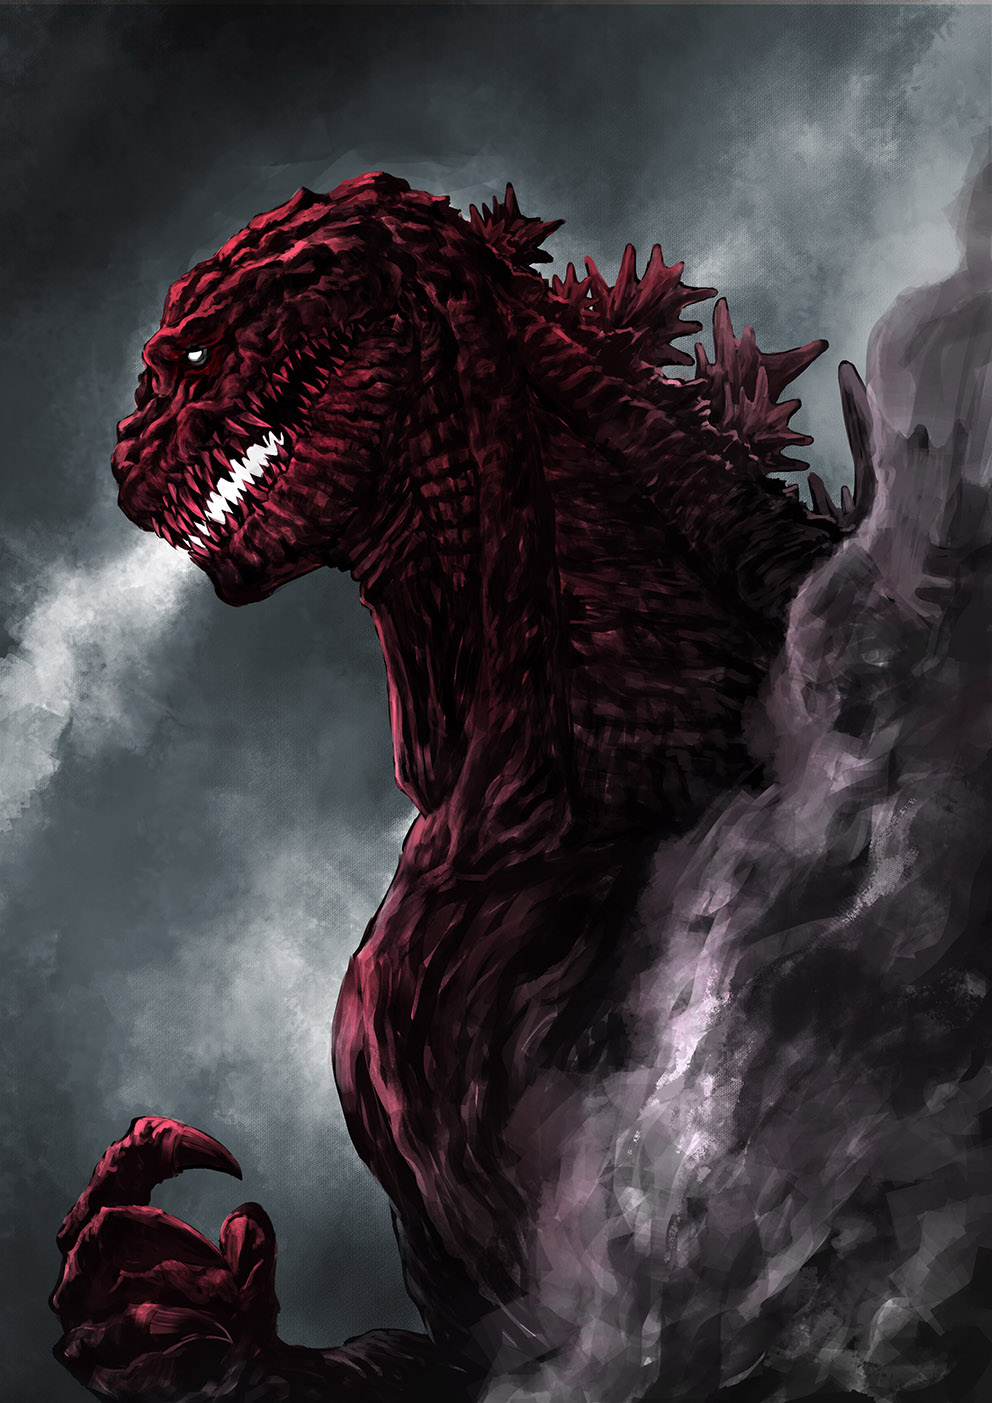 Godzilla Resurgence fan artwork